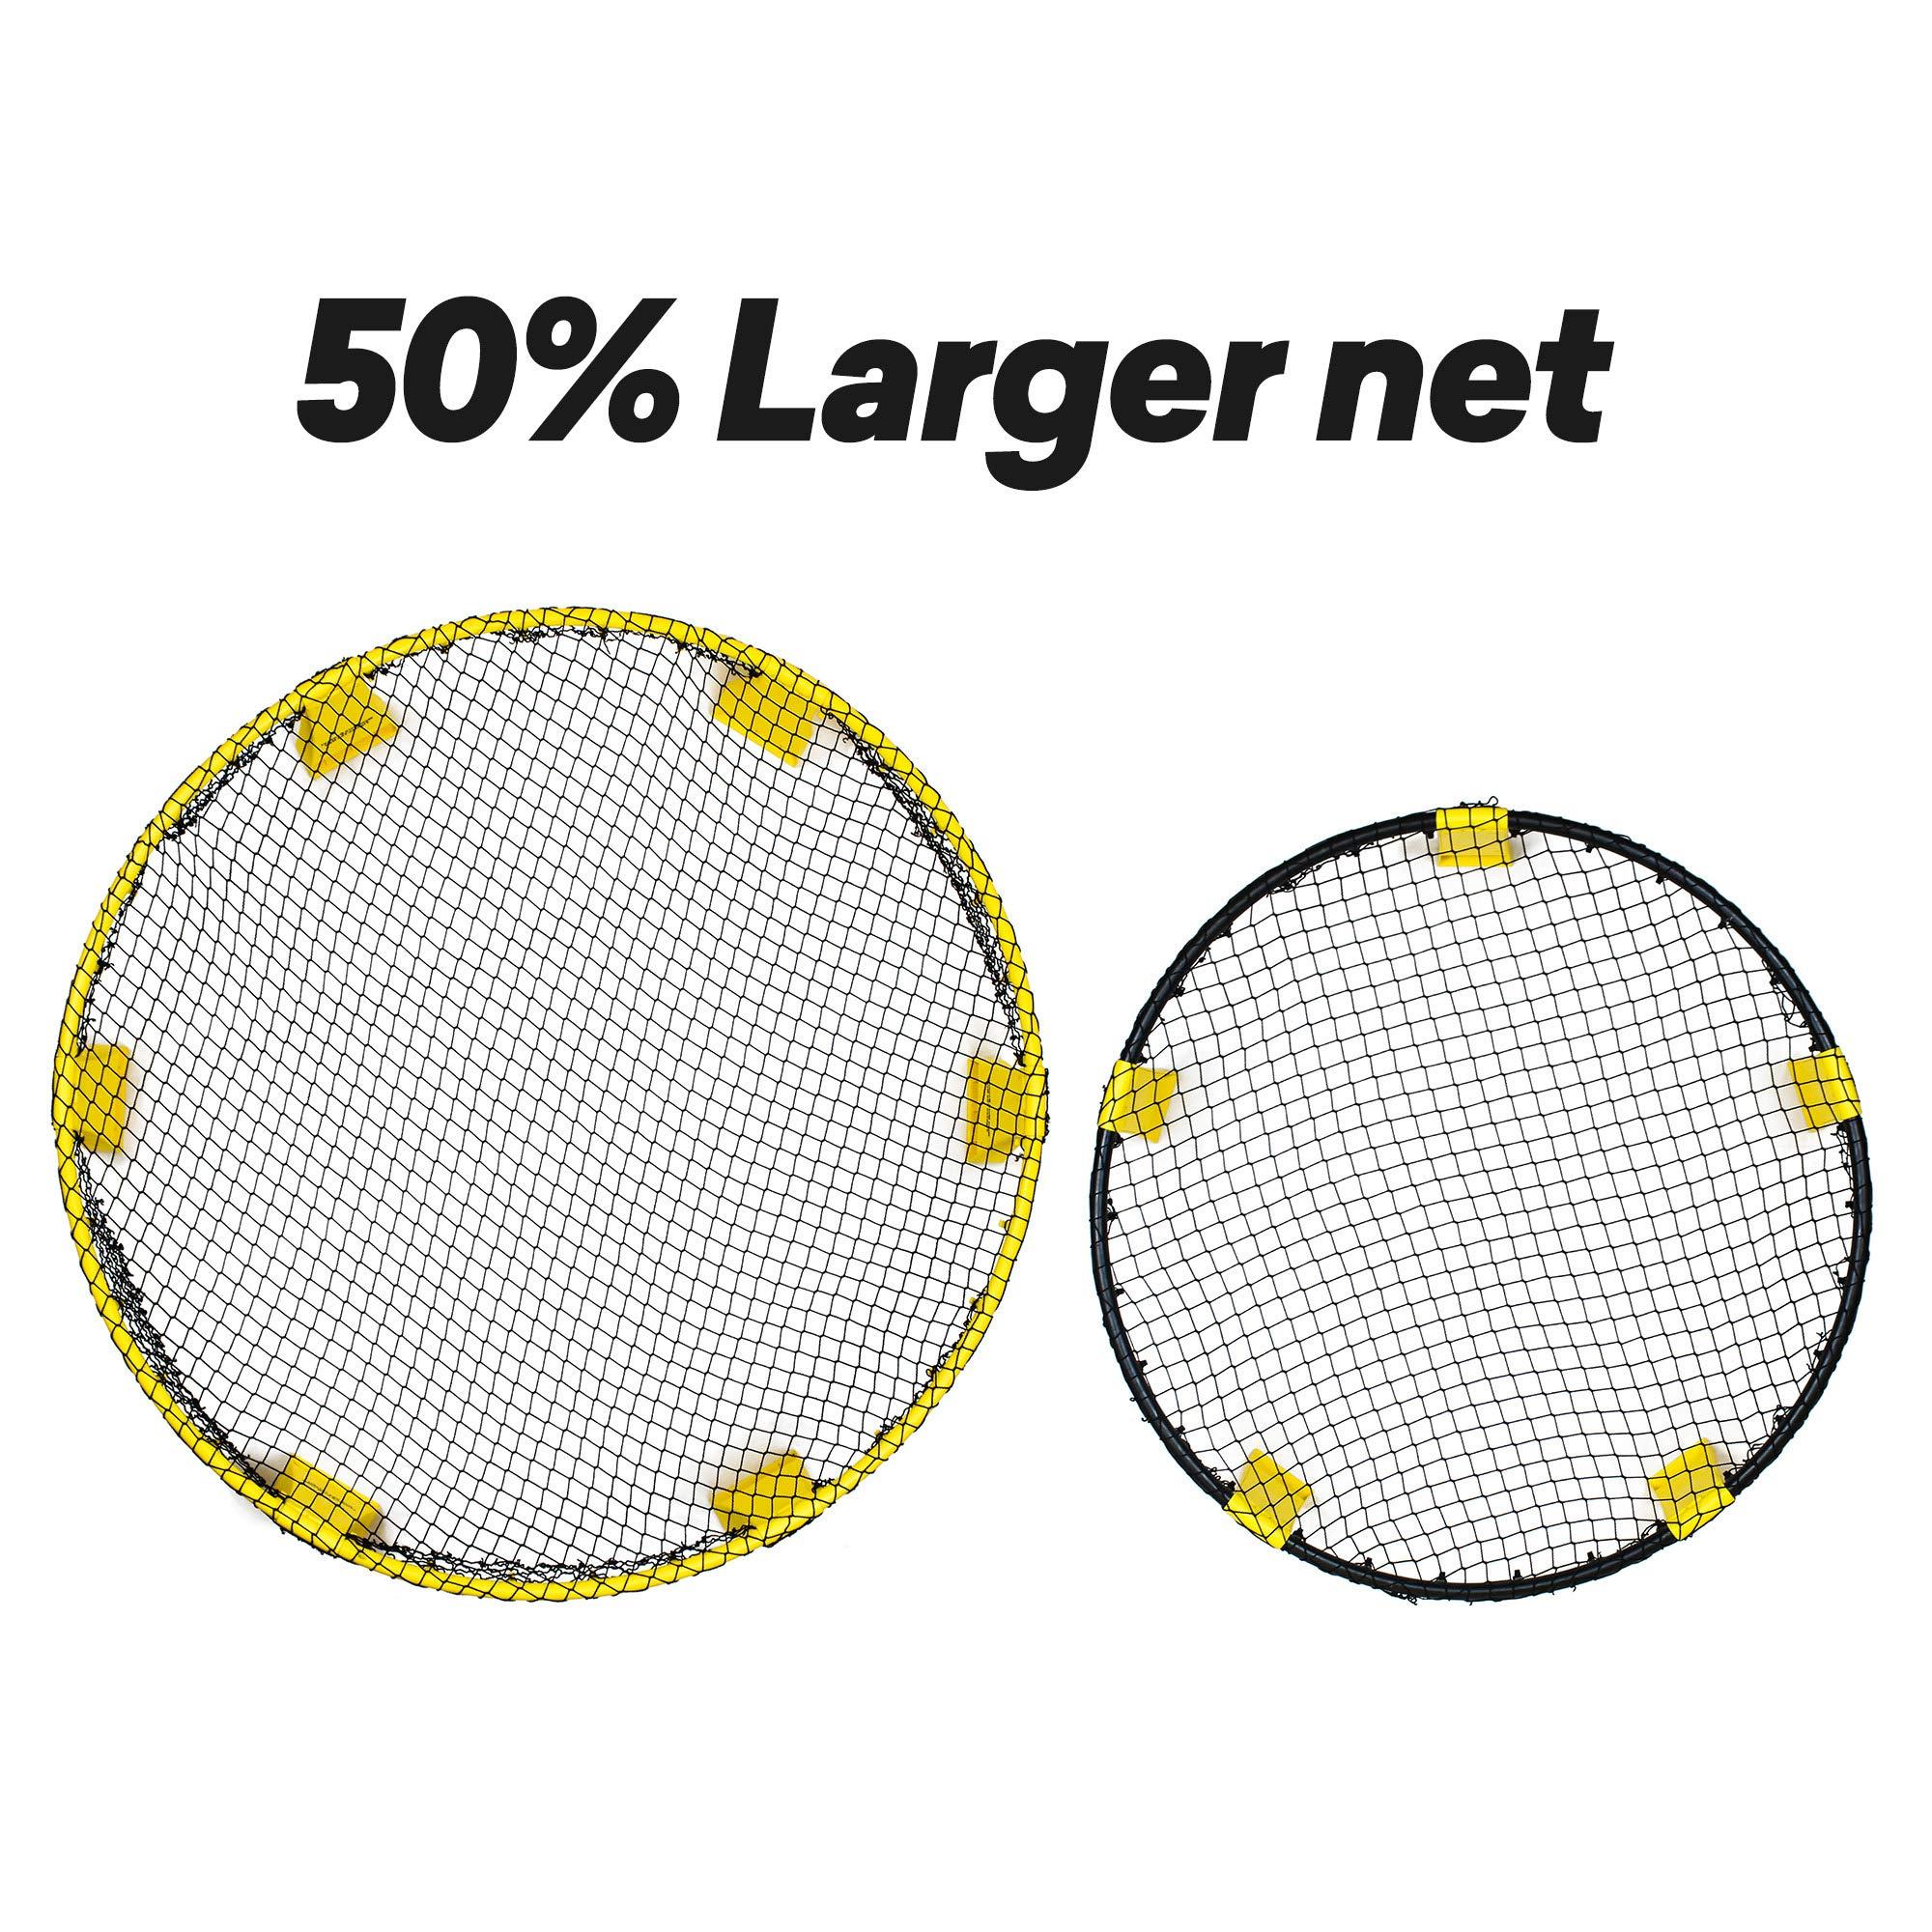 Spikeball Starter Kit - 50% Larger Net and Ball - Played Outdoors, Indoors, Yard, Lawn, Beach - Designed for Kids 12 and Under by Spikeball (Image #2)